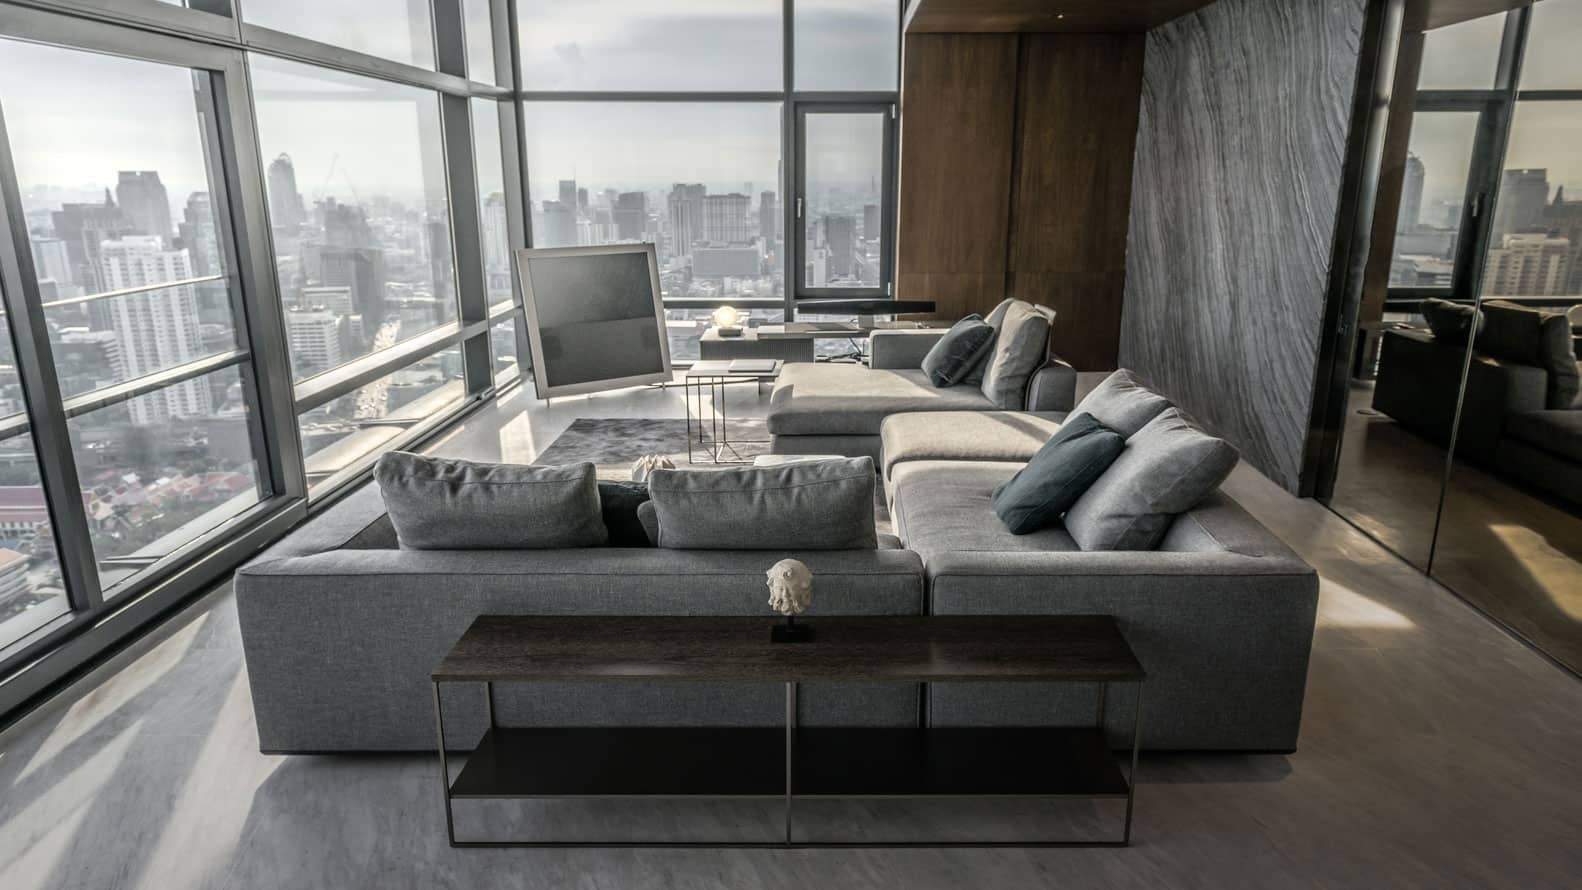 Elegant And Majestic Apartment With Views Over The City Of